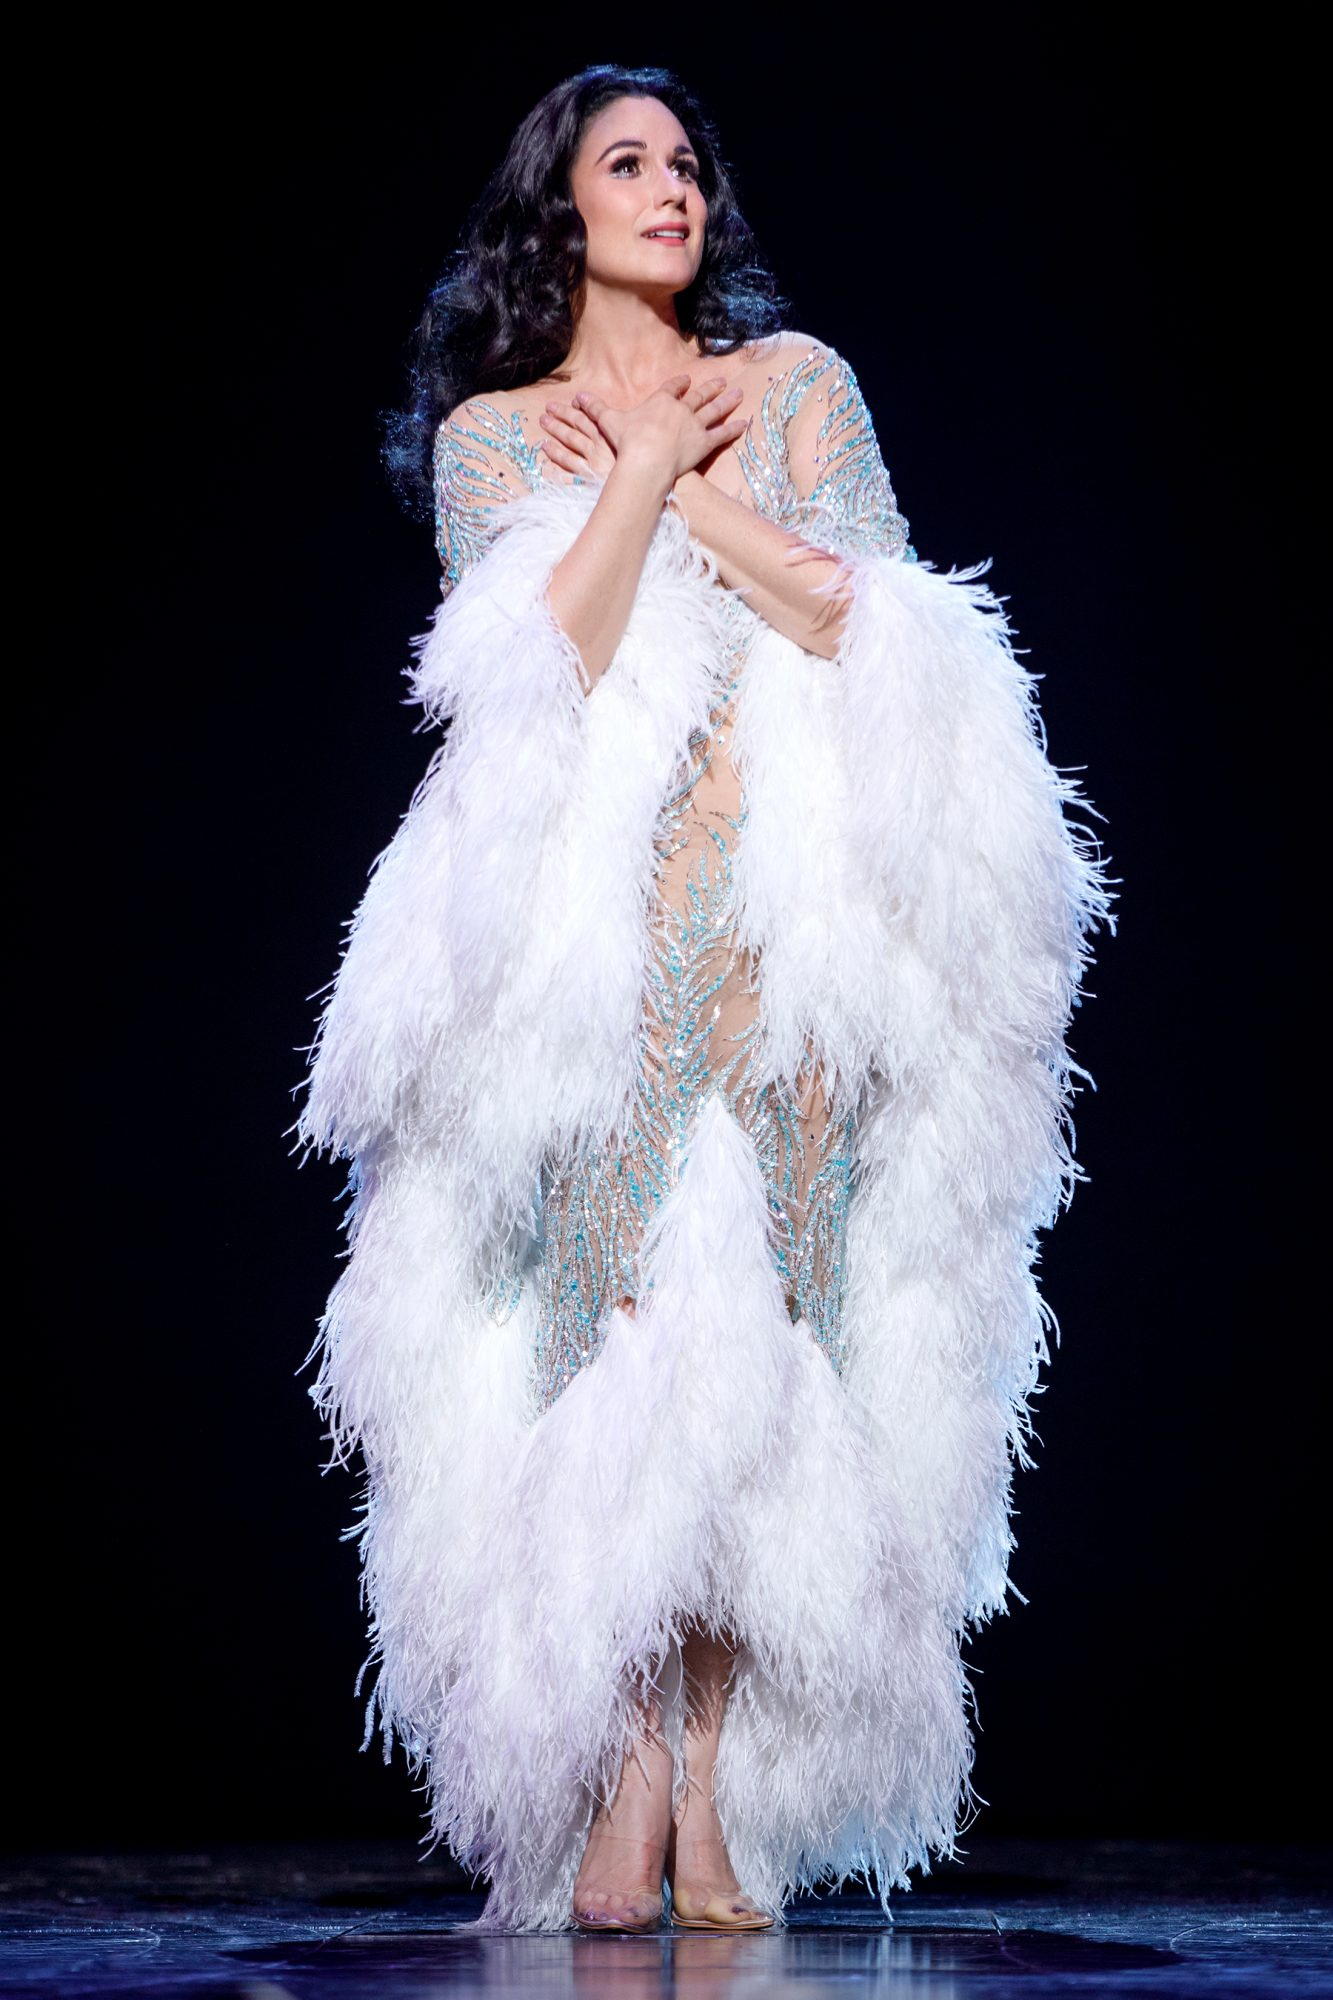 The Cher ShowDirected By Jason MooreBook By Rick Elice